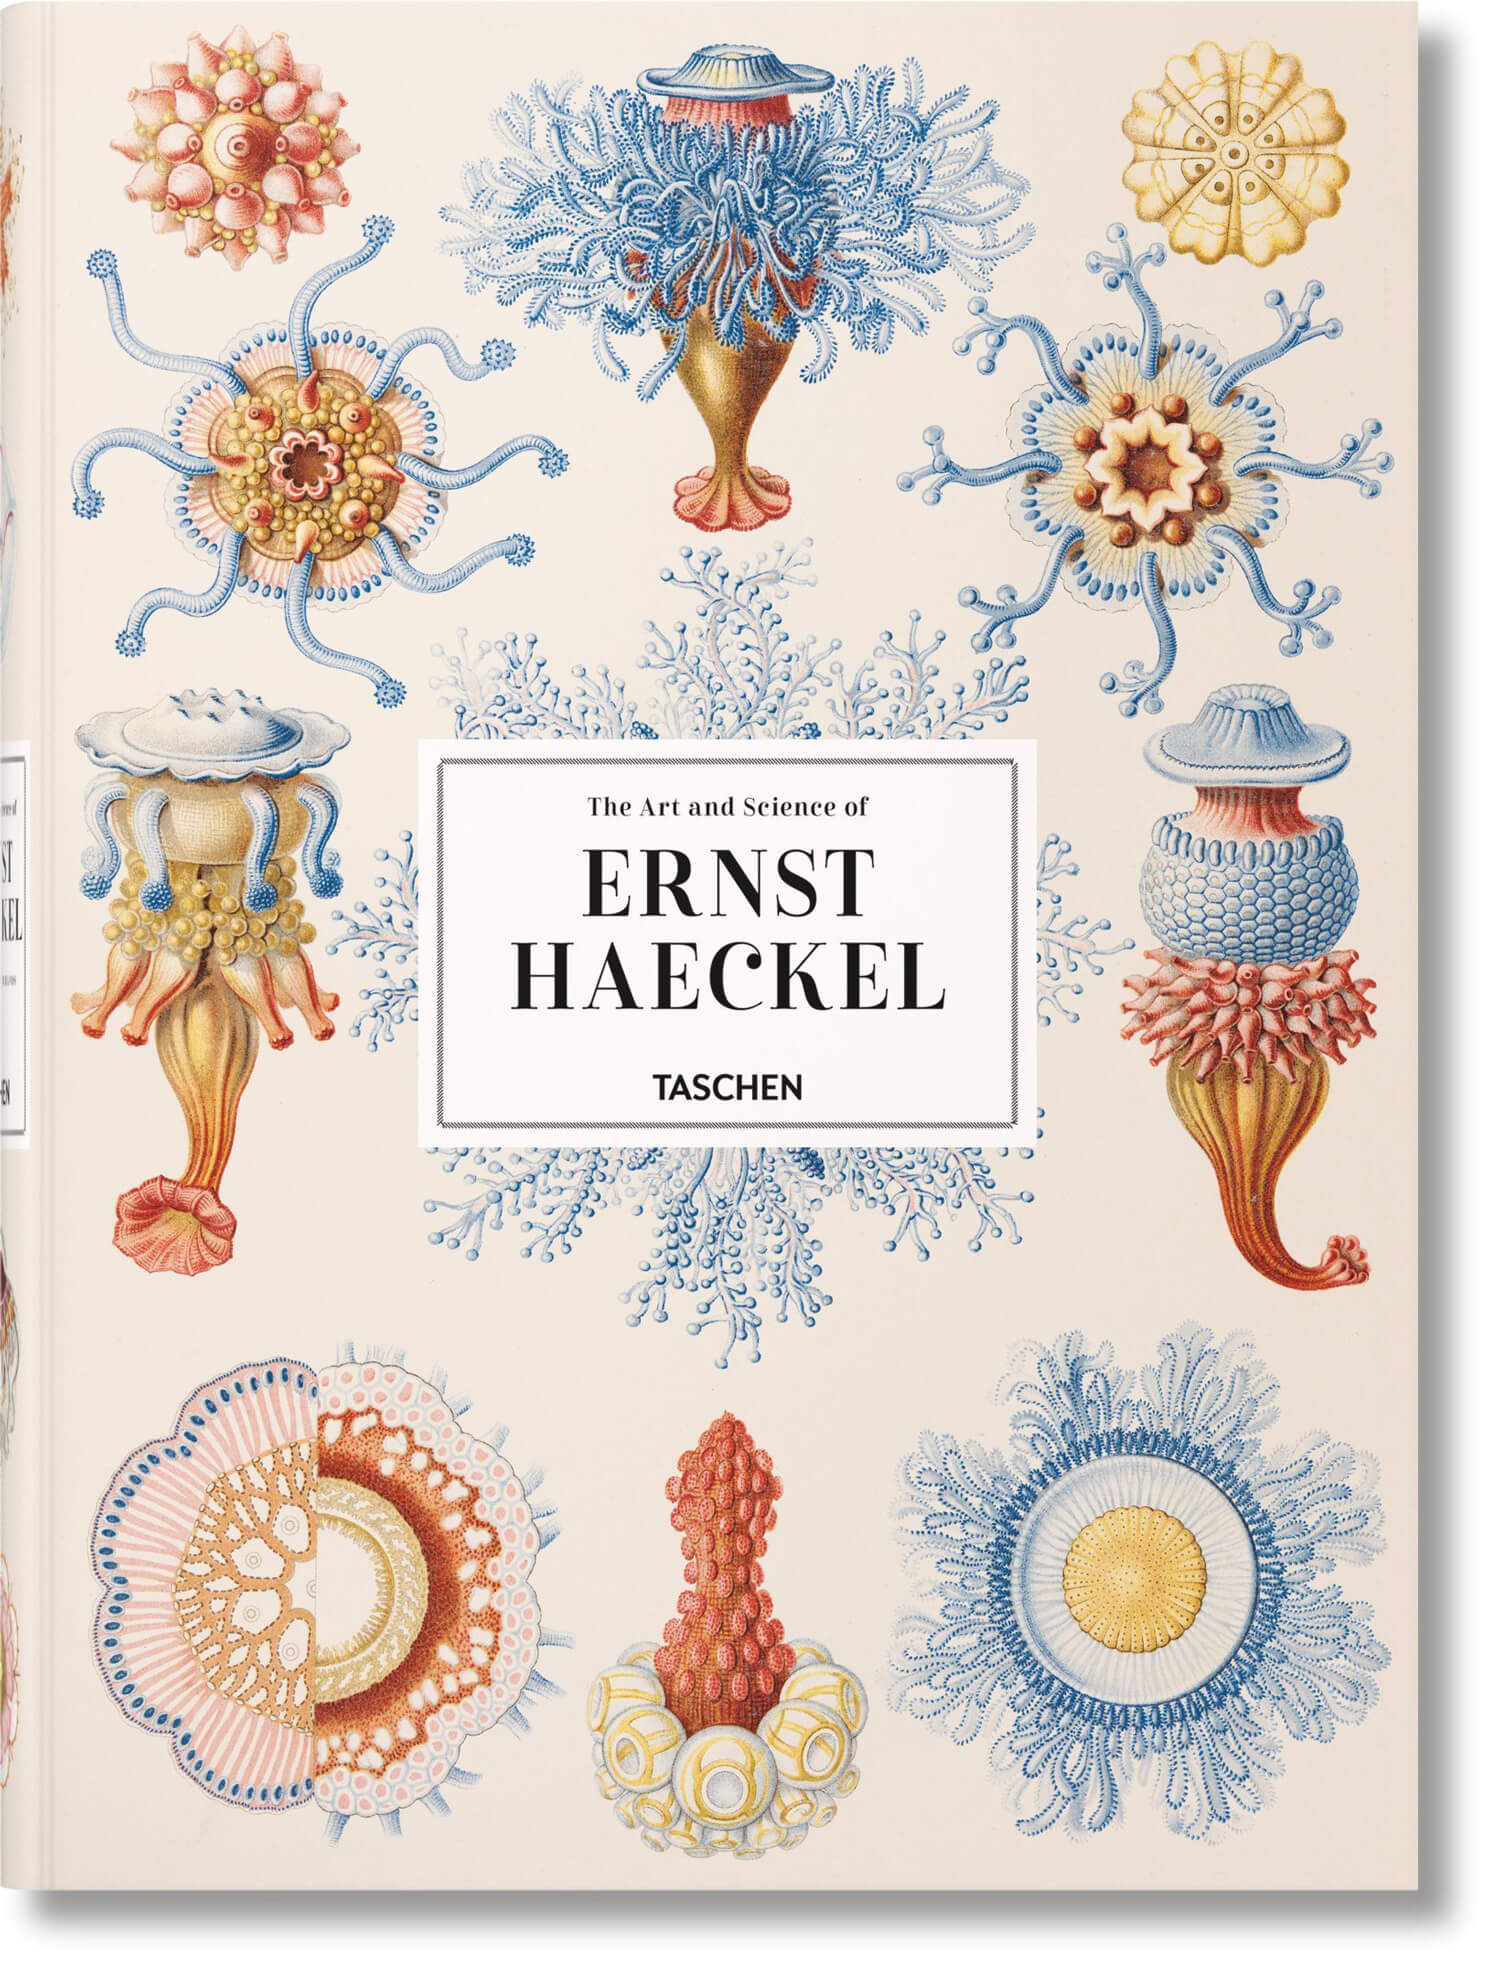 the art and science of ernst haeckel fy 11